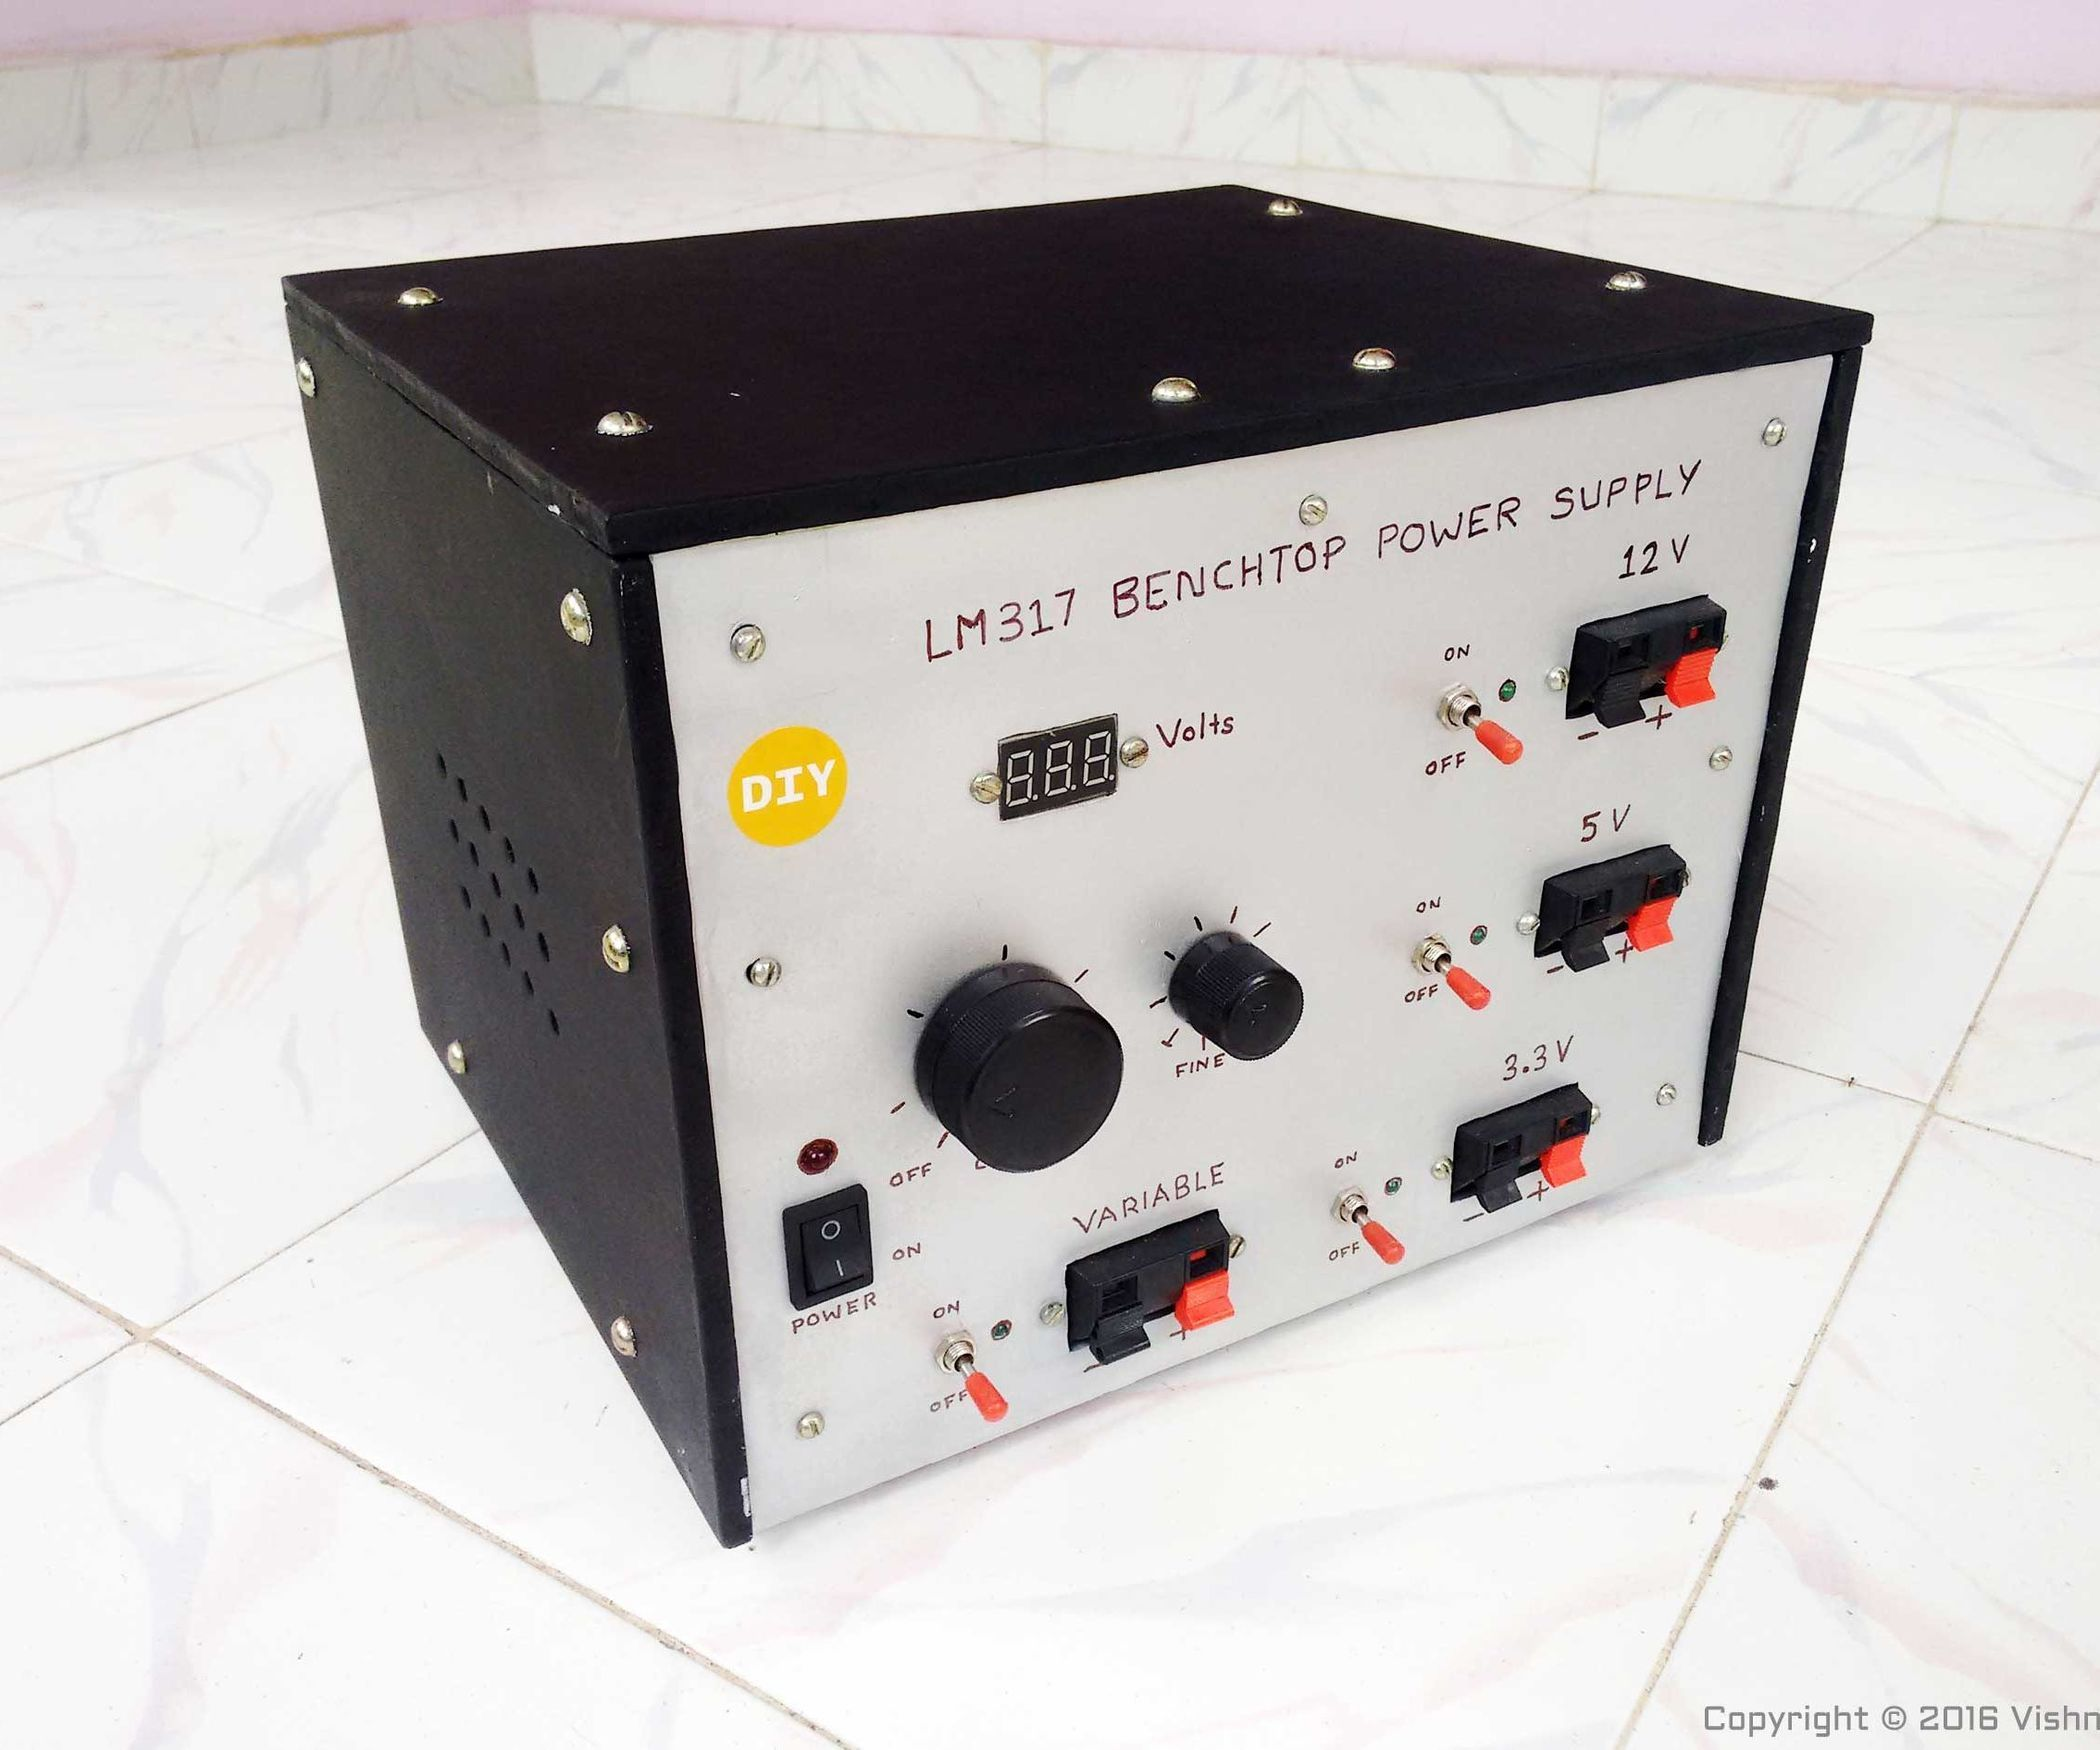 Lm317 Based Diy Variable Benchtop Power Supply Electronics Projects Power Supply Hobby Electronics